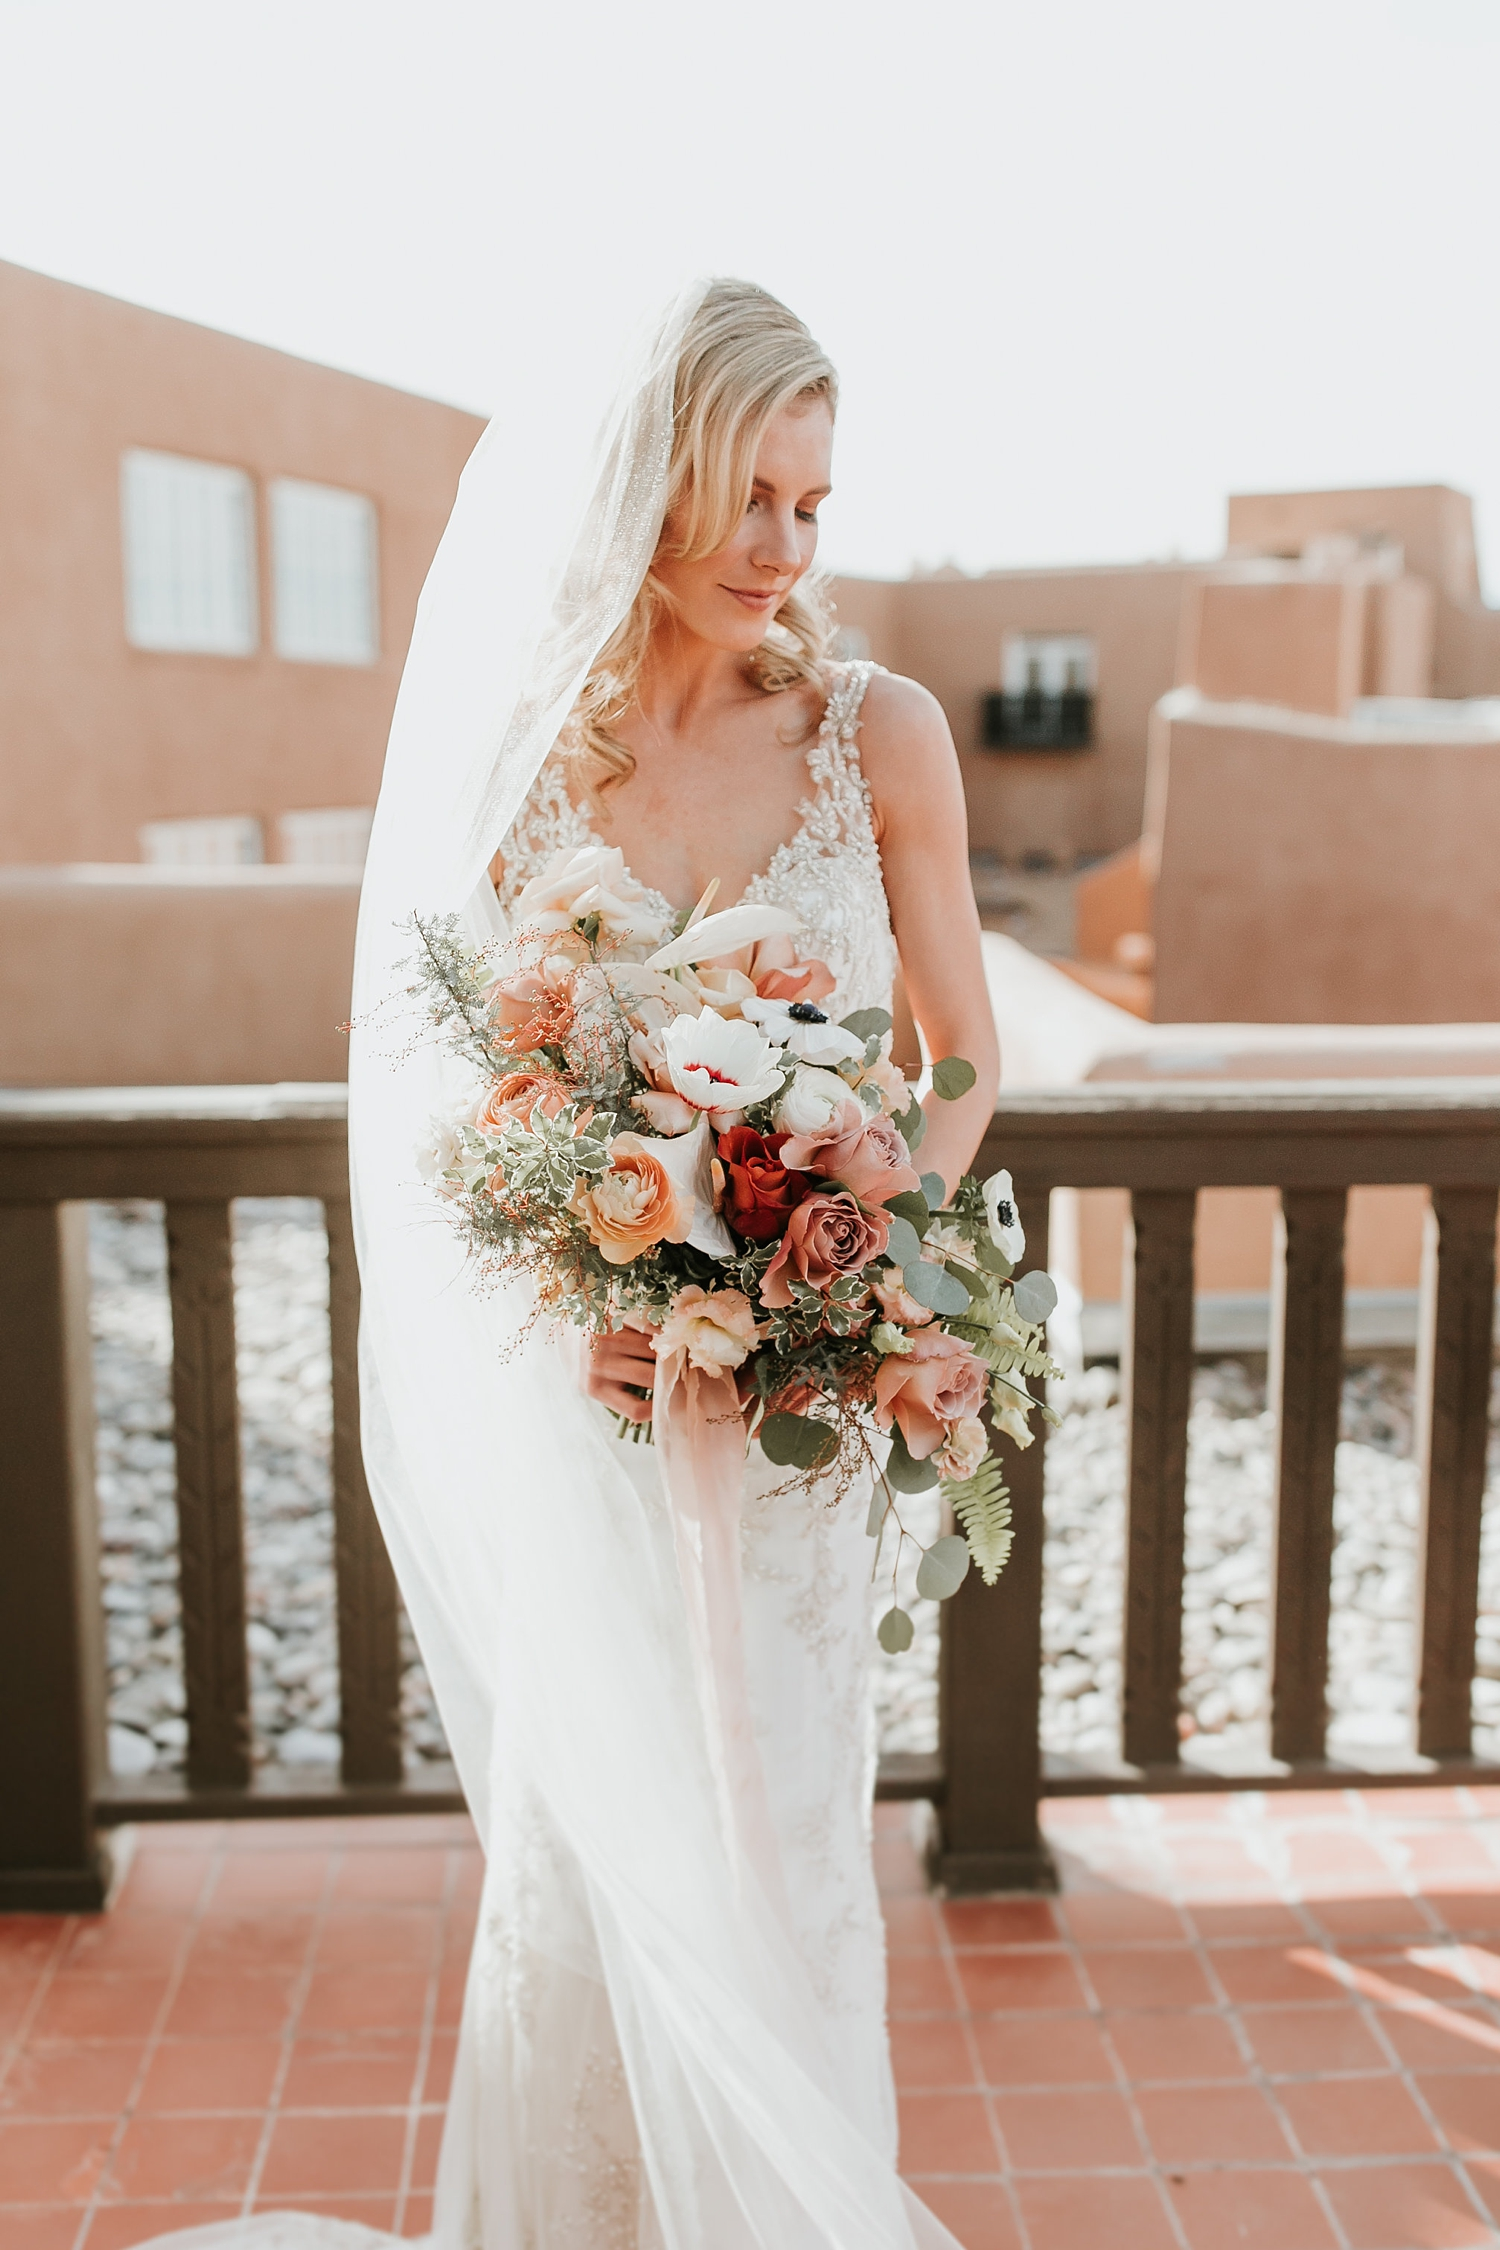 Alicia+lucia+photography+-+albuquerque+wedding+photographer+-+santa+fe+wedding+photography+-+new+mexico+wedding+photographer+-+la+fonda+wedding+-+la+fonda+winter+wedding_0025.jpg